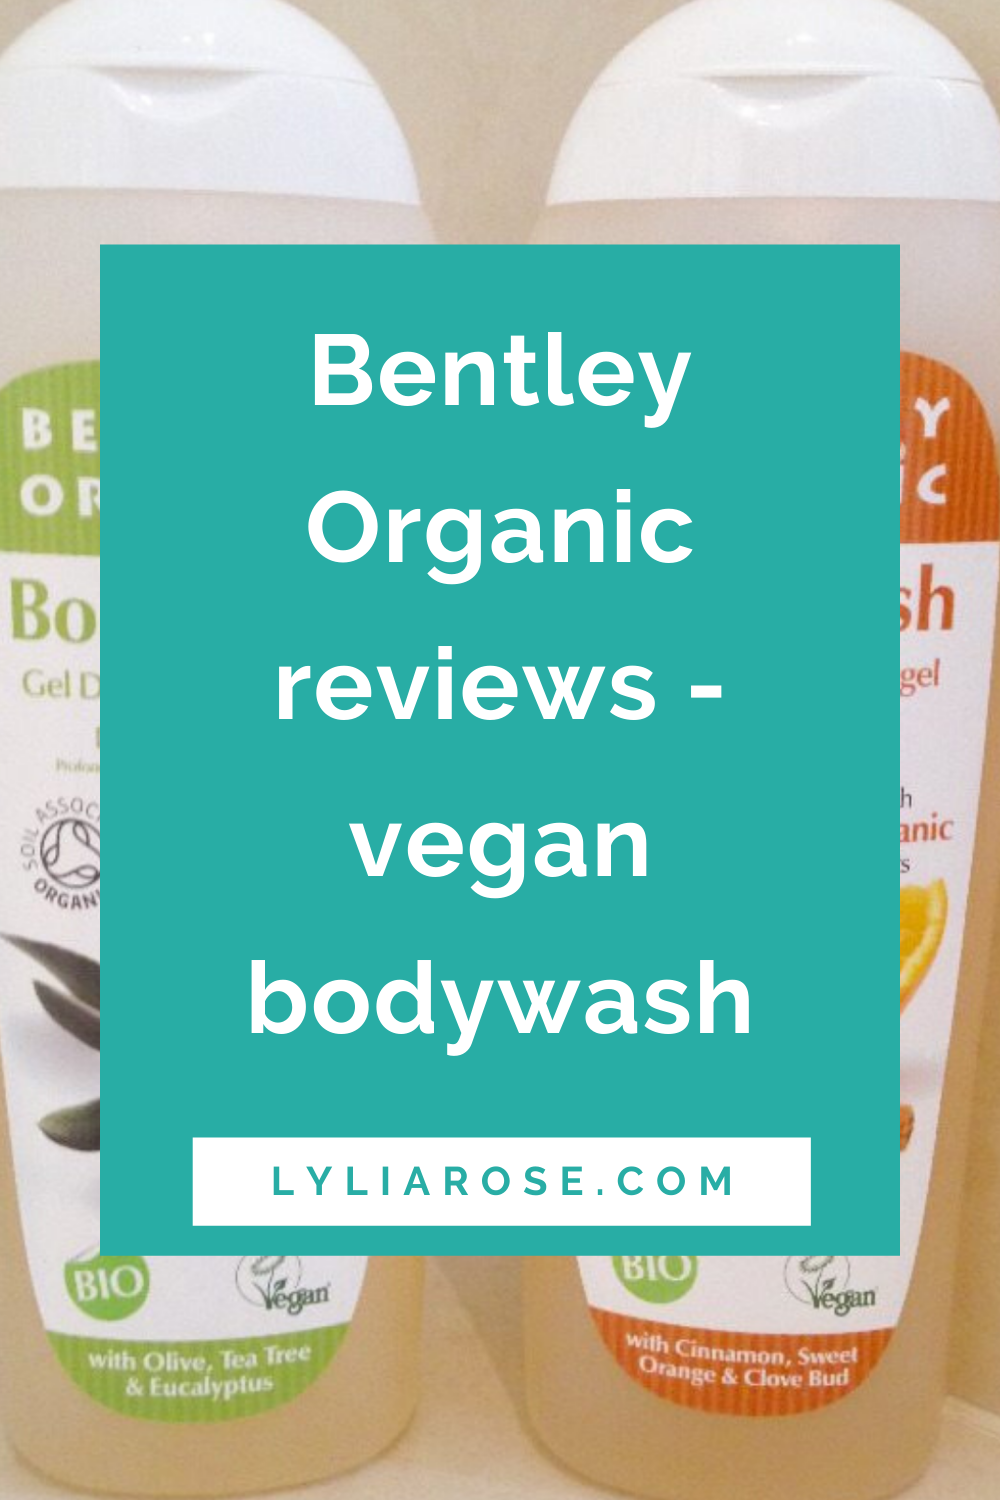 Bentley Organic reviews - vegan bodywash